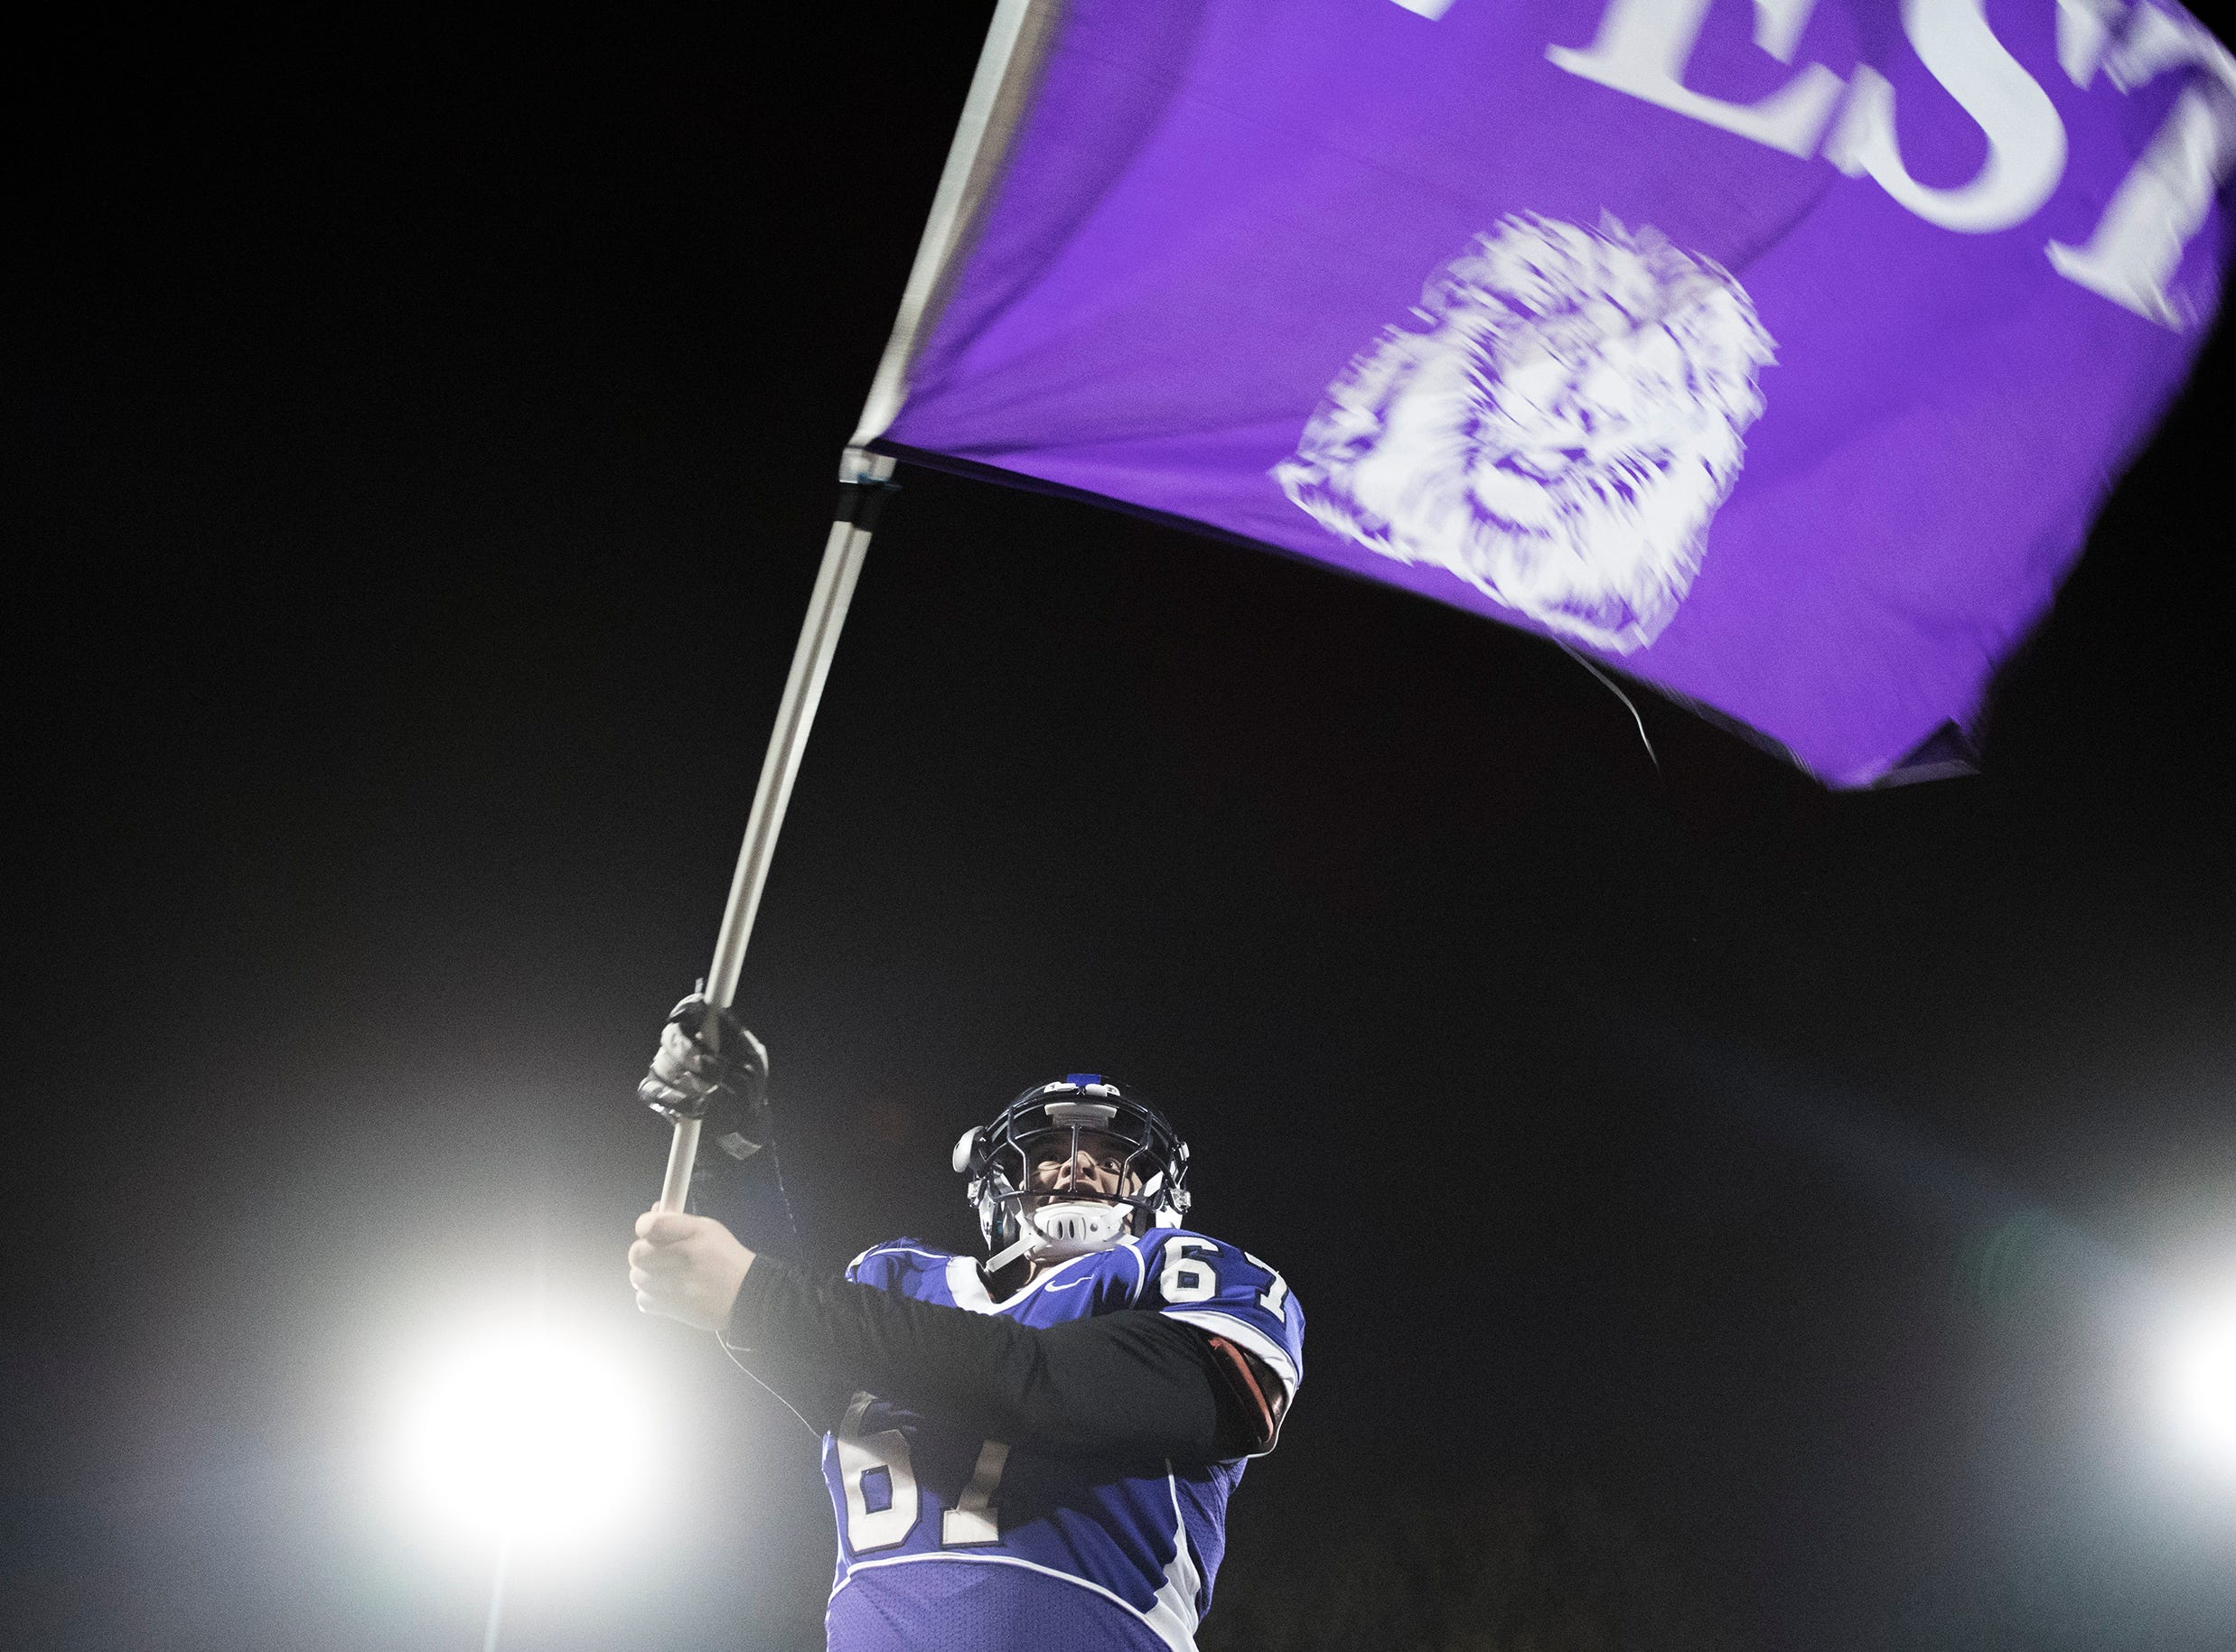 West's Seamus Curran (67) waves the school flag before winning an annual East-West game Wednesday, Nov. 21, 2018 at Cherry Hill West High School in Cherry Hill, N.J. West won 22-7.